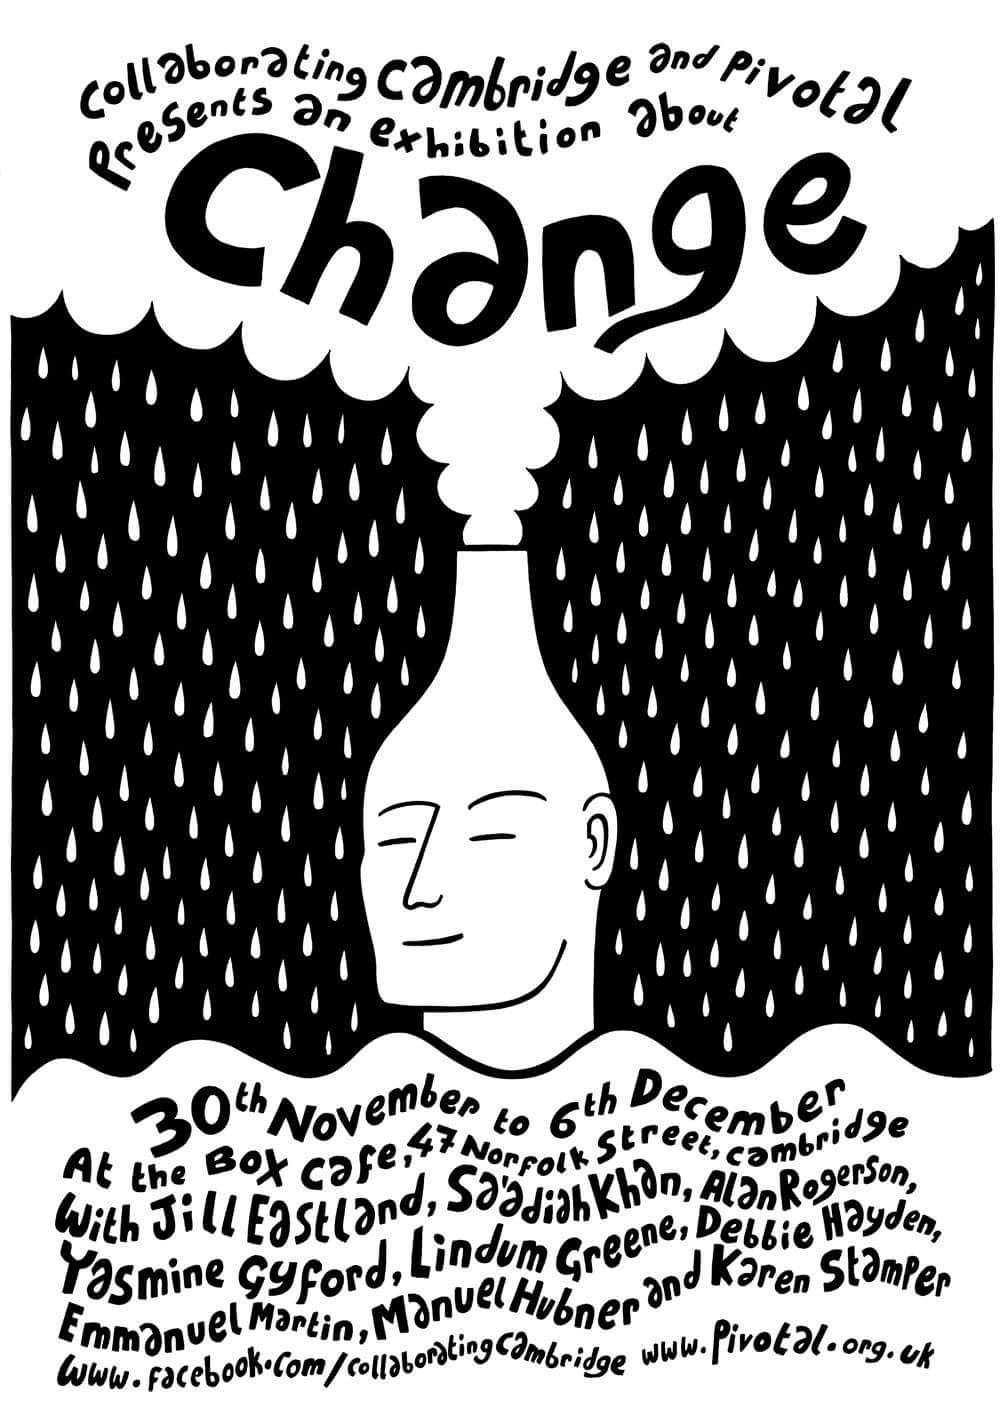 Alan Rogerson's poster for the Change Exhibition.